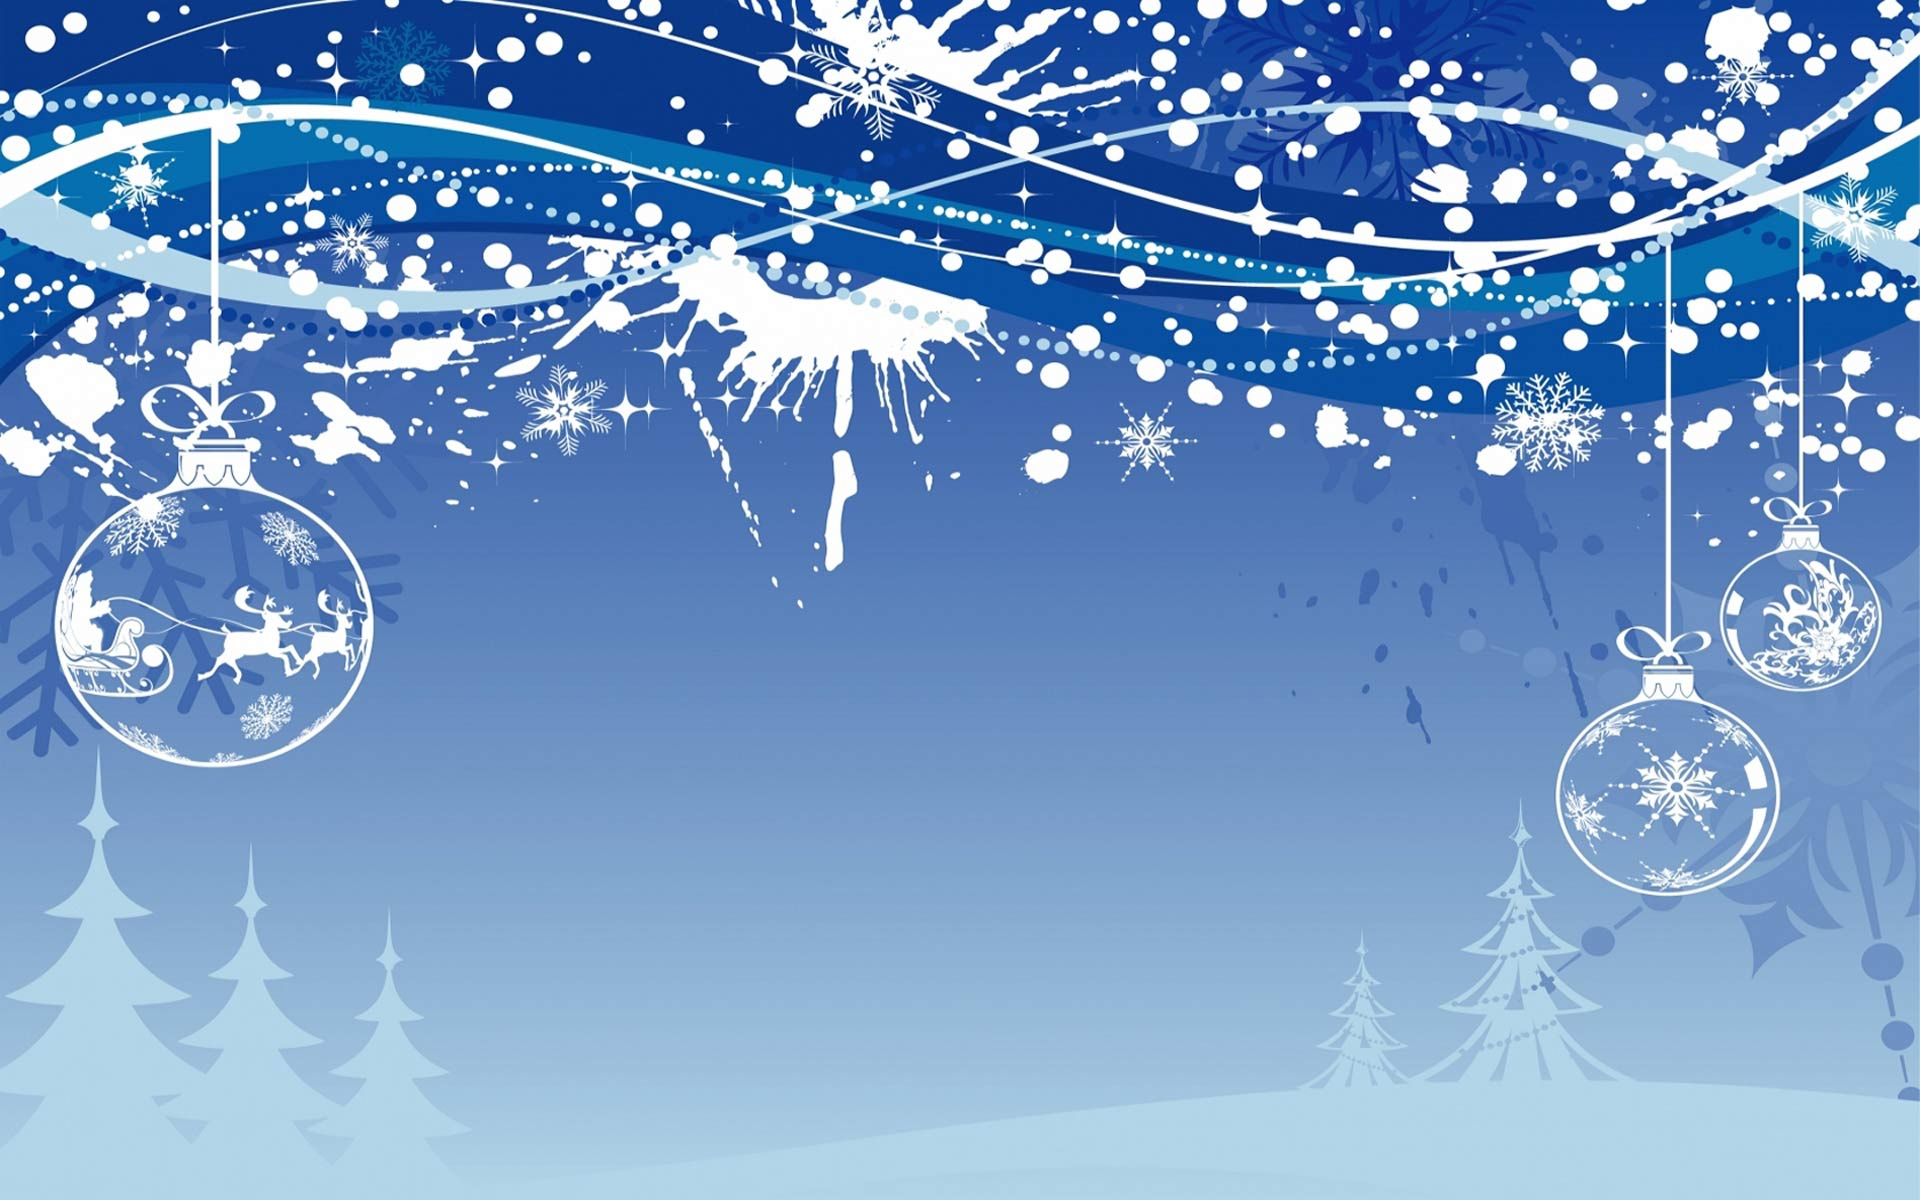 christmas-pictures-Widescreen-Christmas-to-Have-Logic-of-Count-Down-Timer-wallpaper-wp3803784